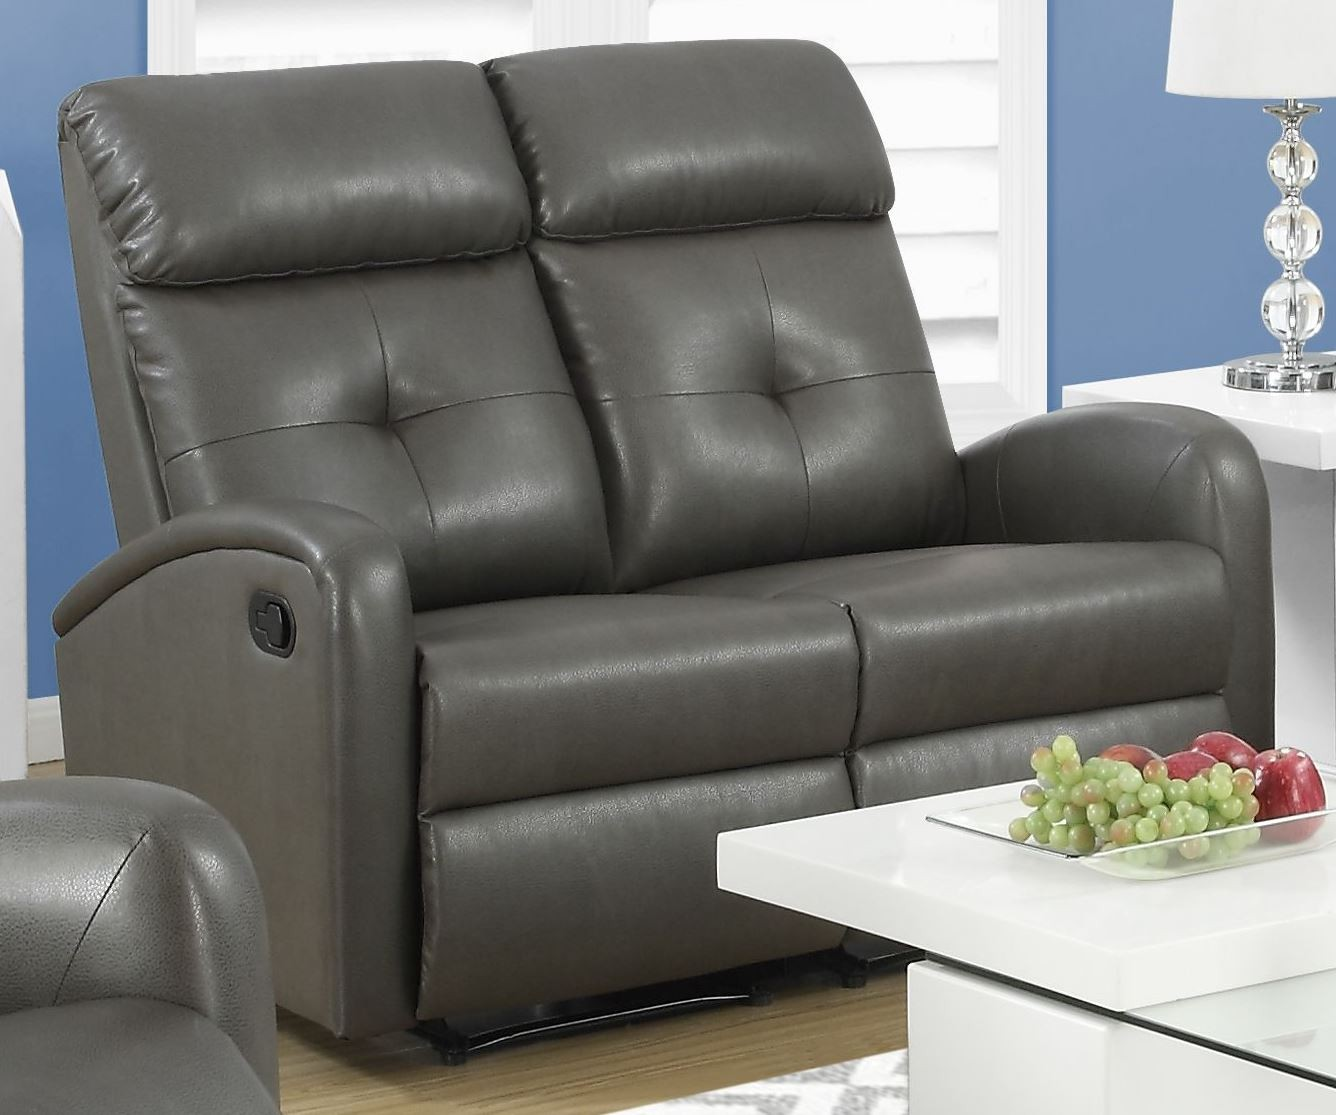 88gy 2 Charcoal Grey Bonded Leather Reclining Loveseat 88gy 2 Monarch